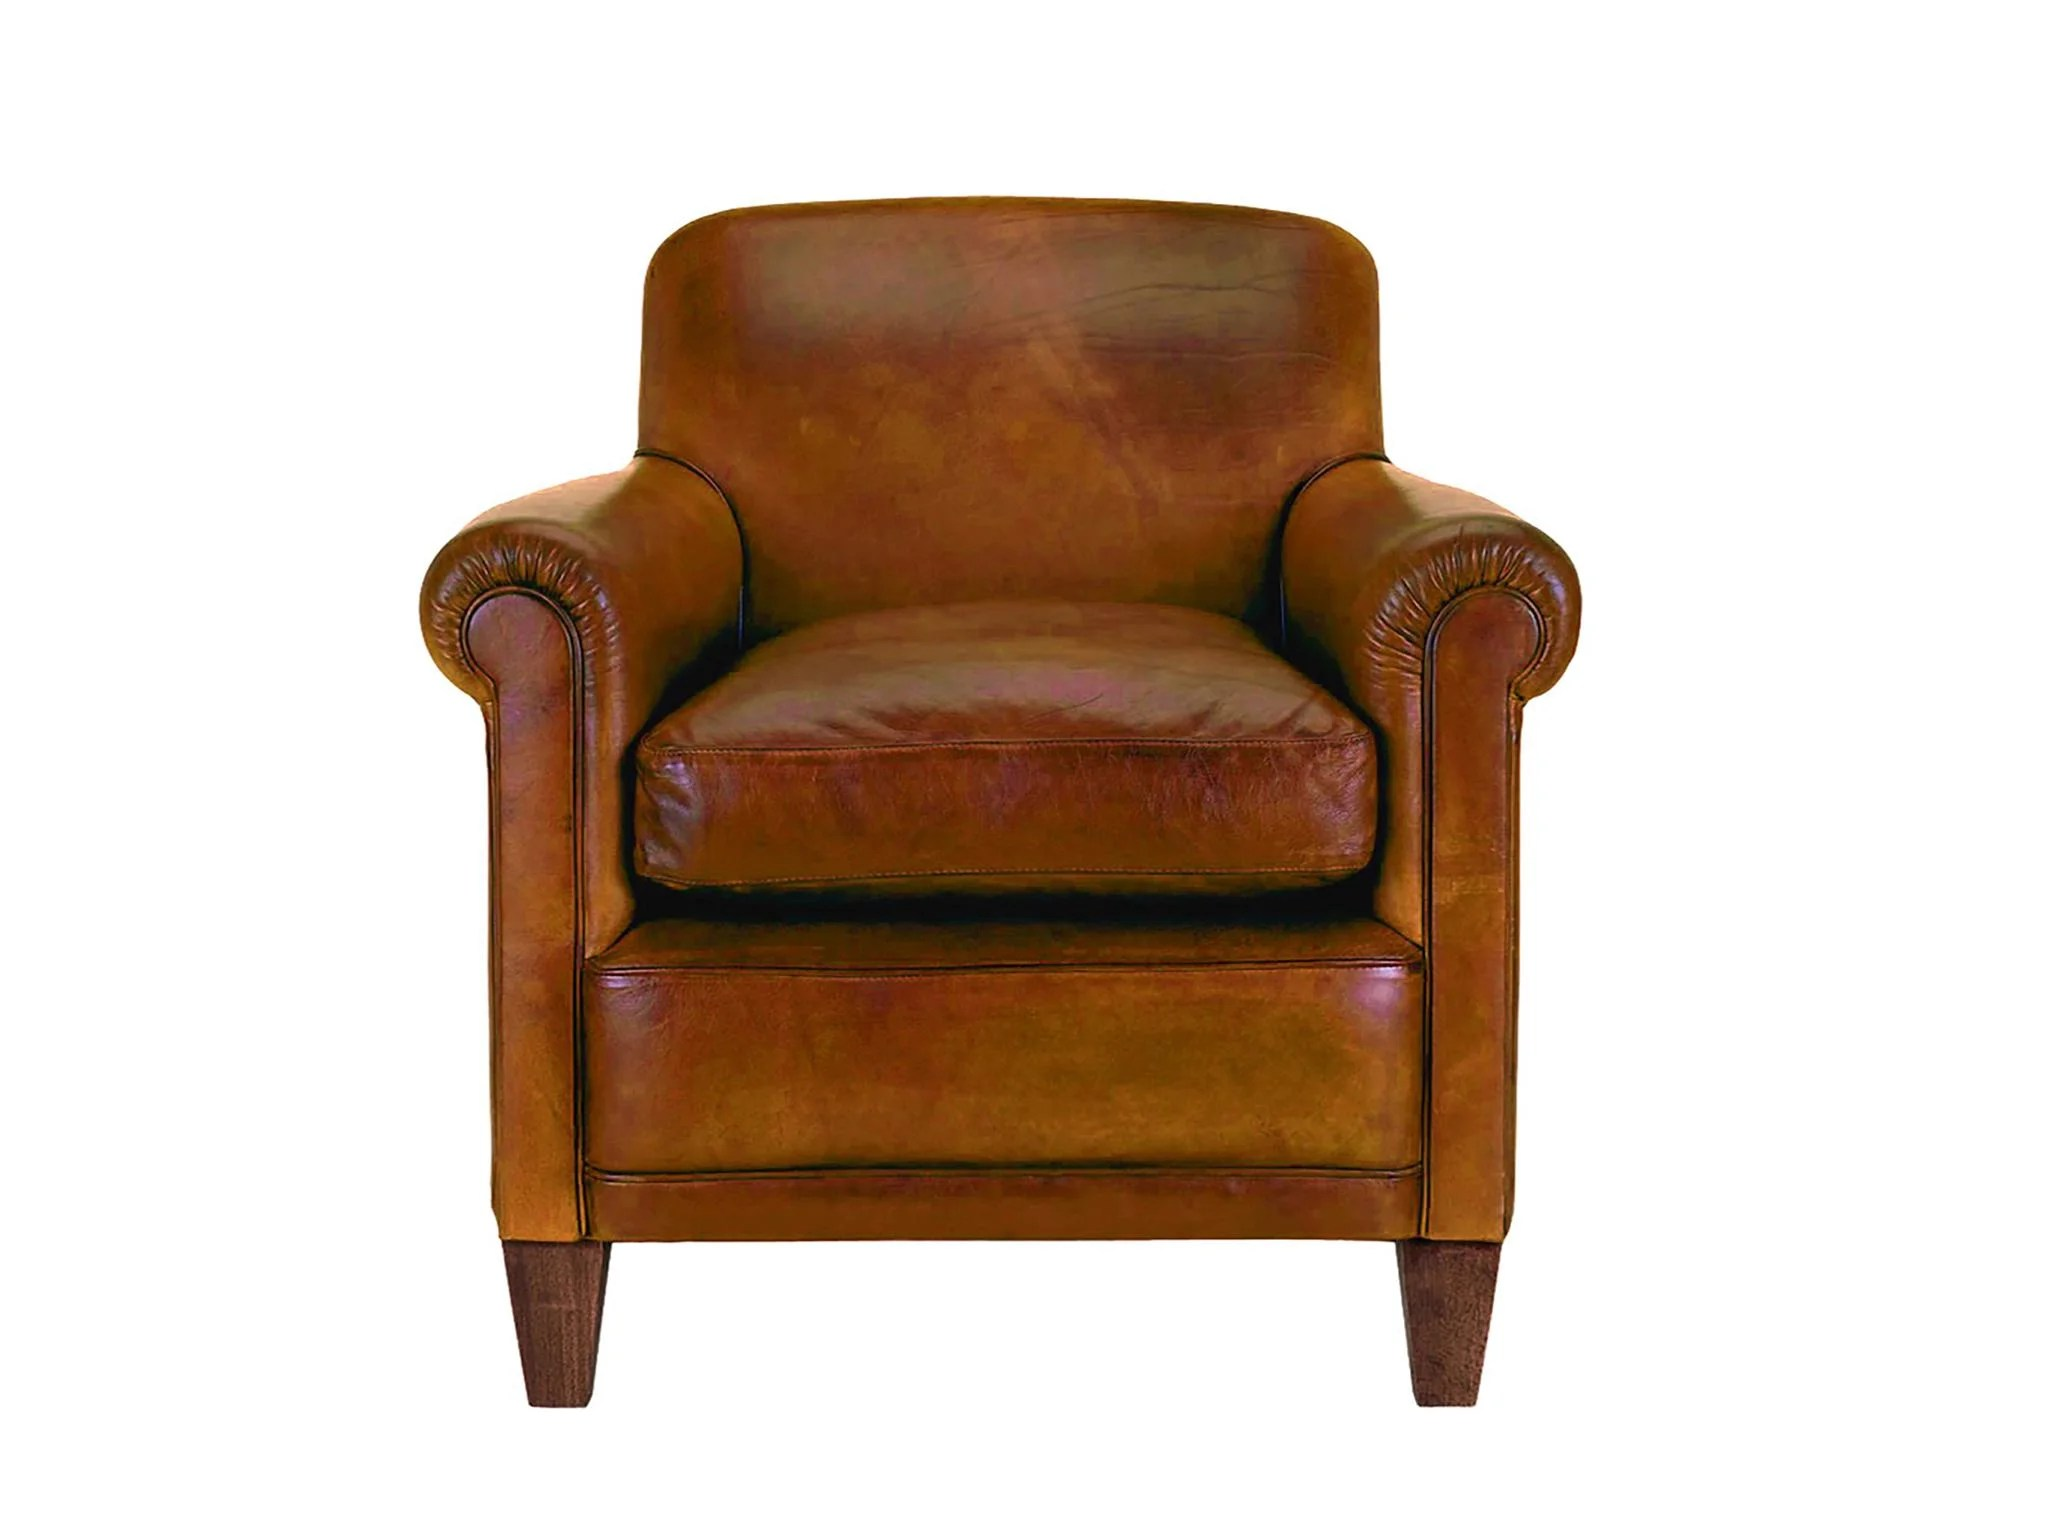 leather chairs of bath london danish lounge chair plans 10 best armchairs the independent laura ashley burlington from 750